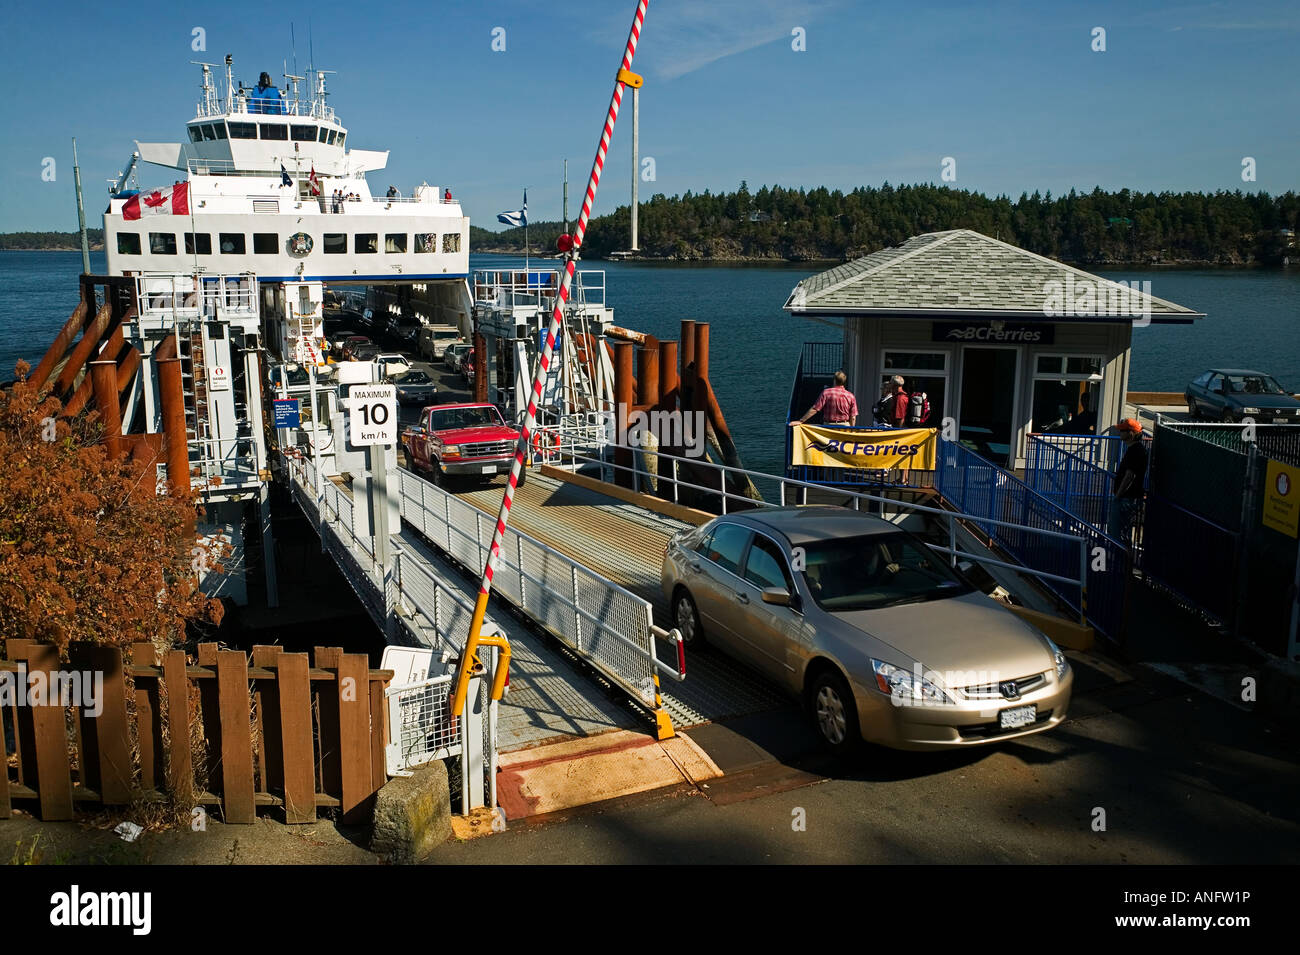 Cars unloading from BC Ferry at Lyall Harbour on Saturna Island, Saturna Island, British Columbia, Canada. - Stock Image